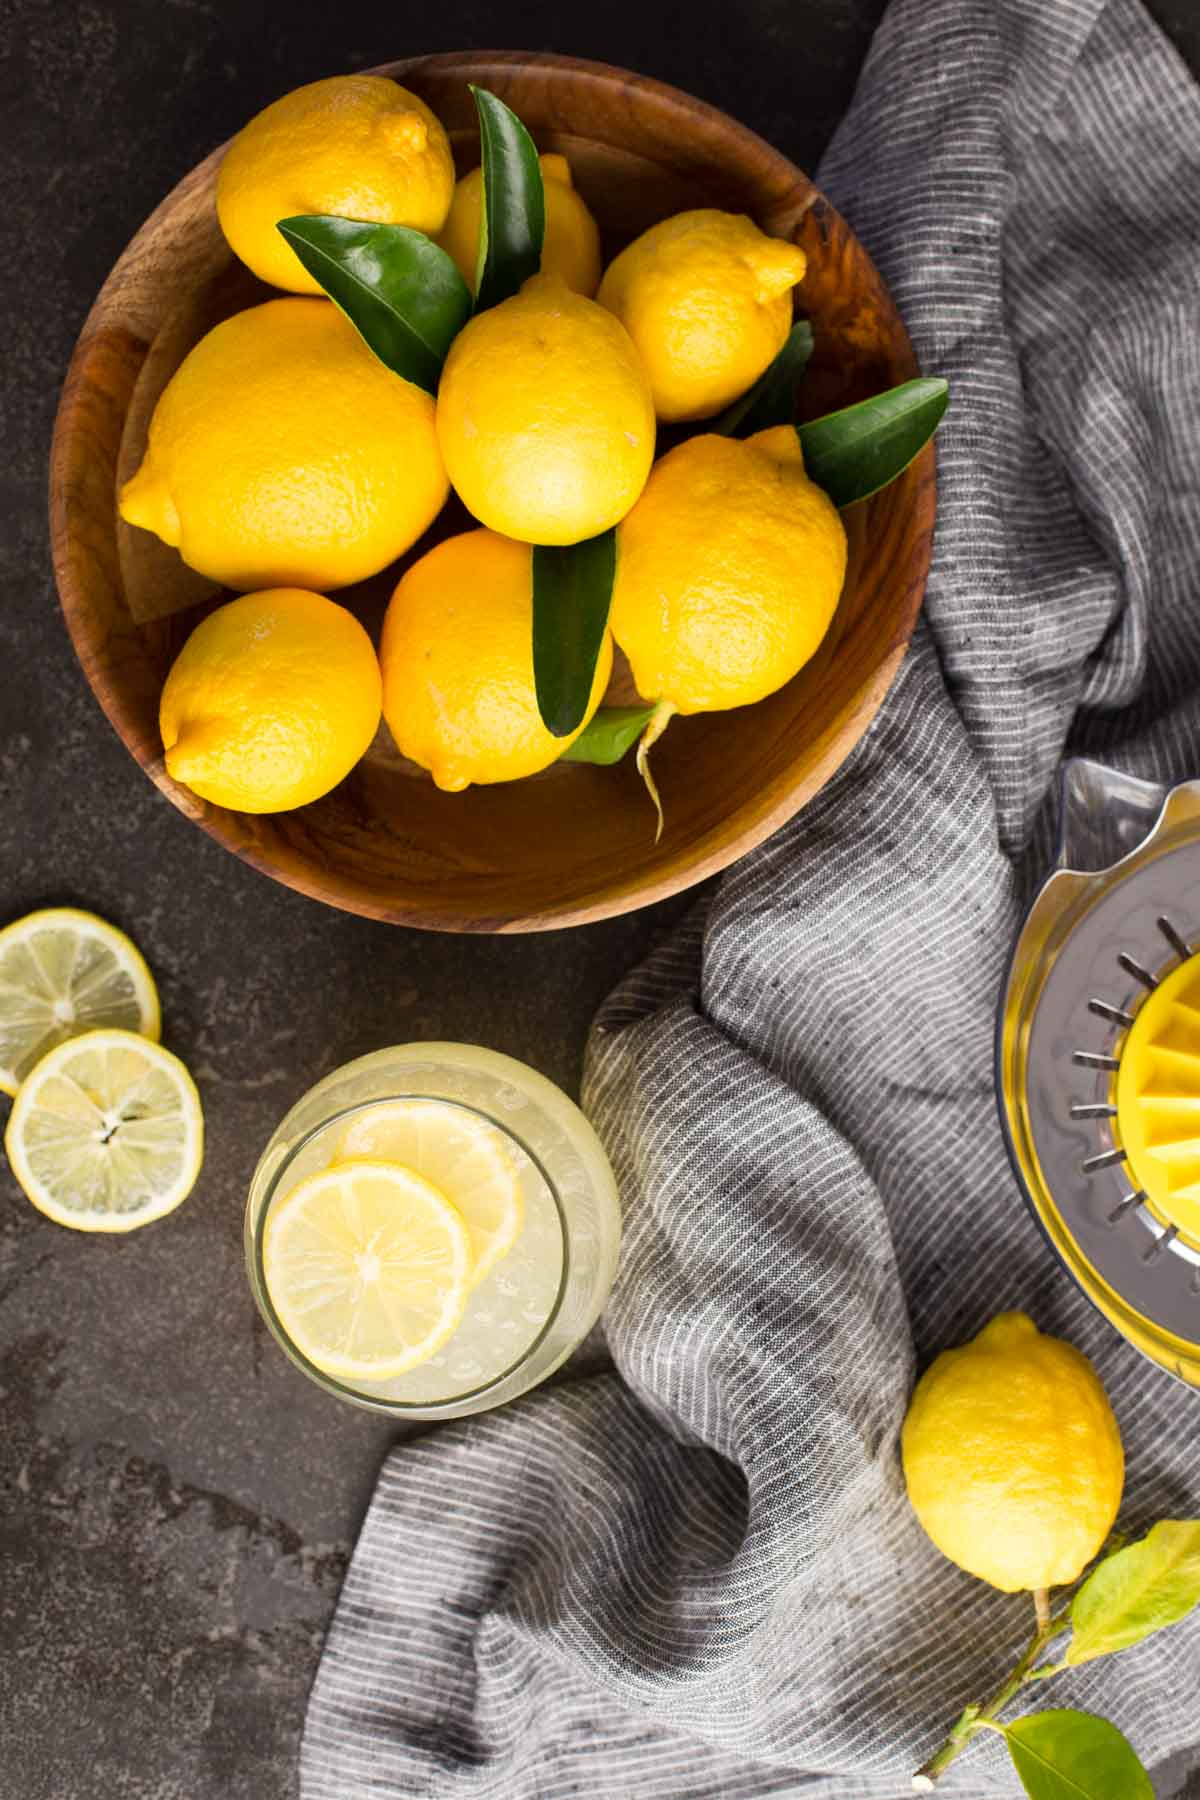 Top down view of wooden bowl of lemons with a glass of lemonade and lemon slices.